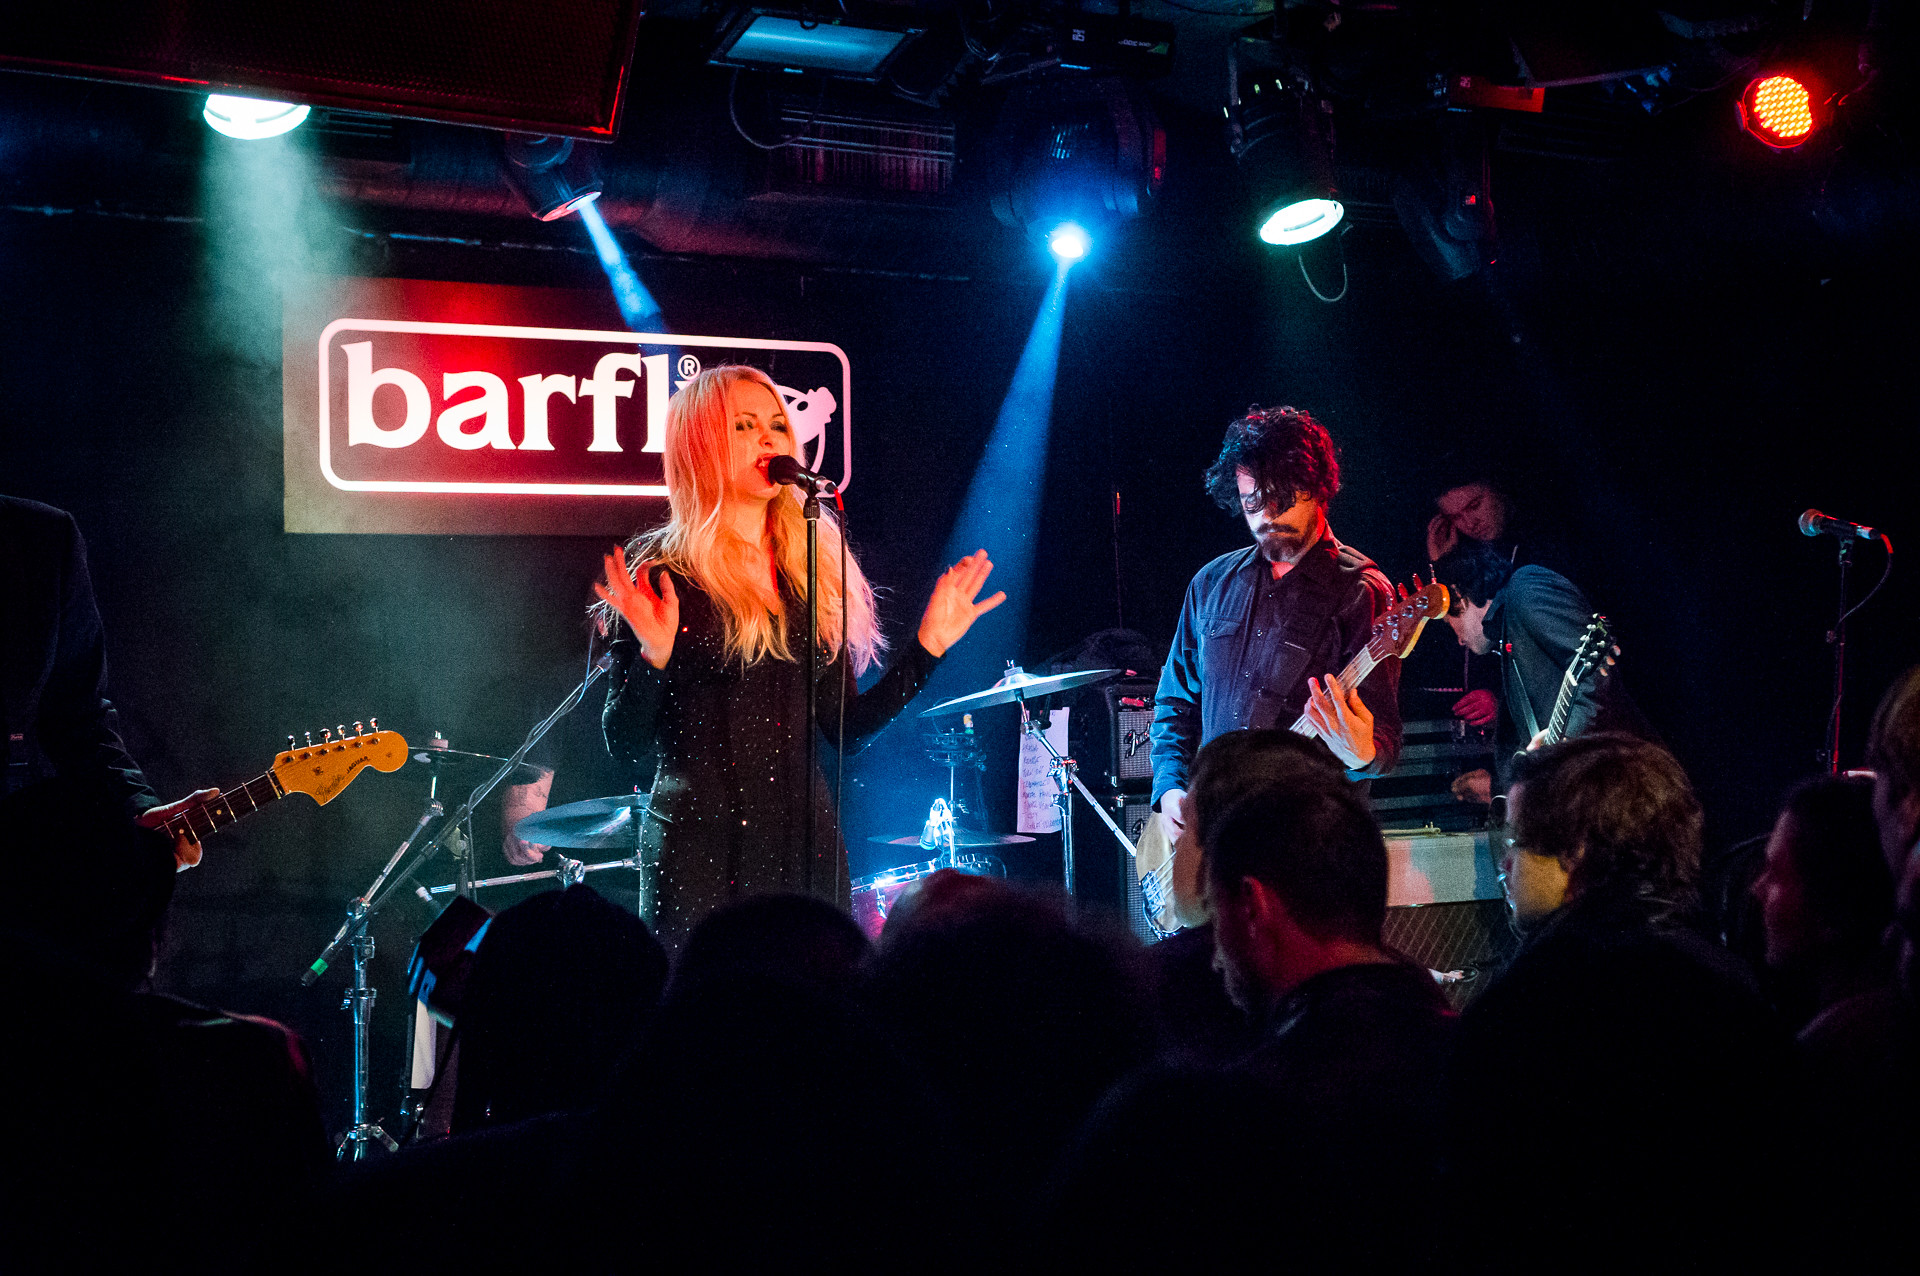 88/365 - Sweethead at the Barfly